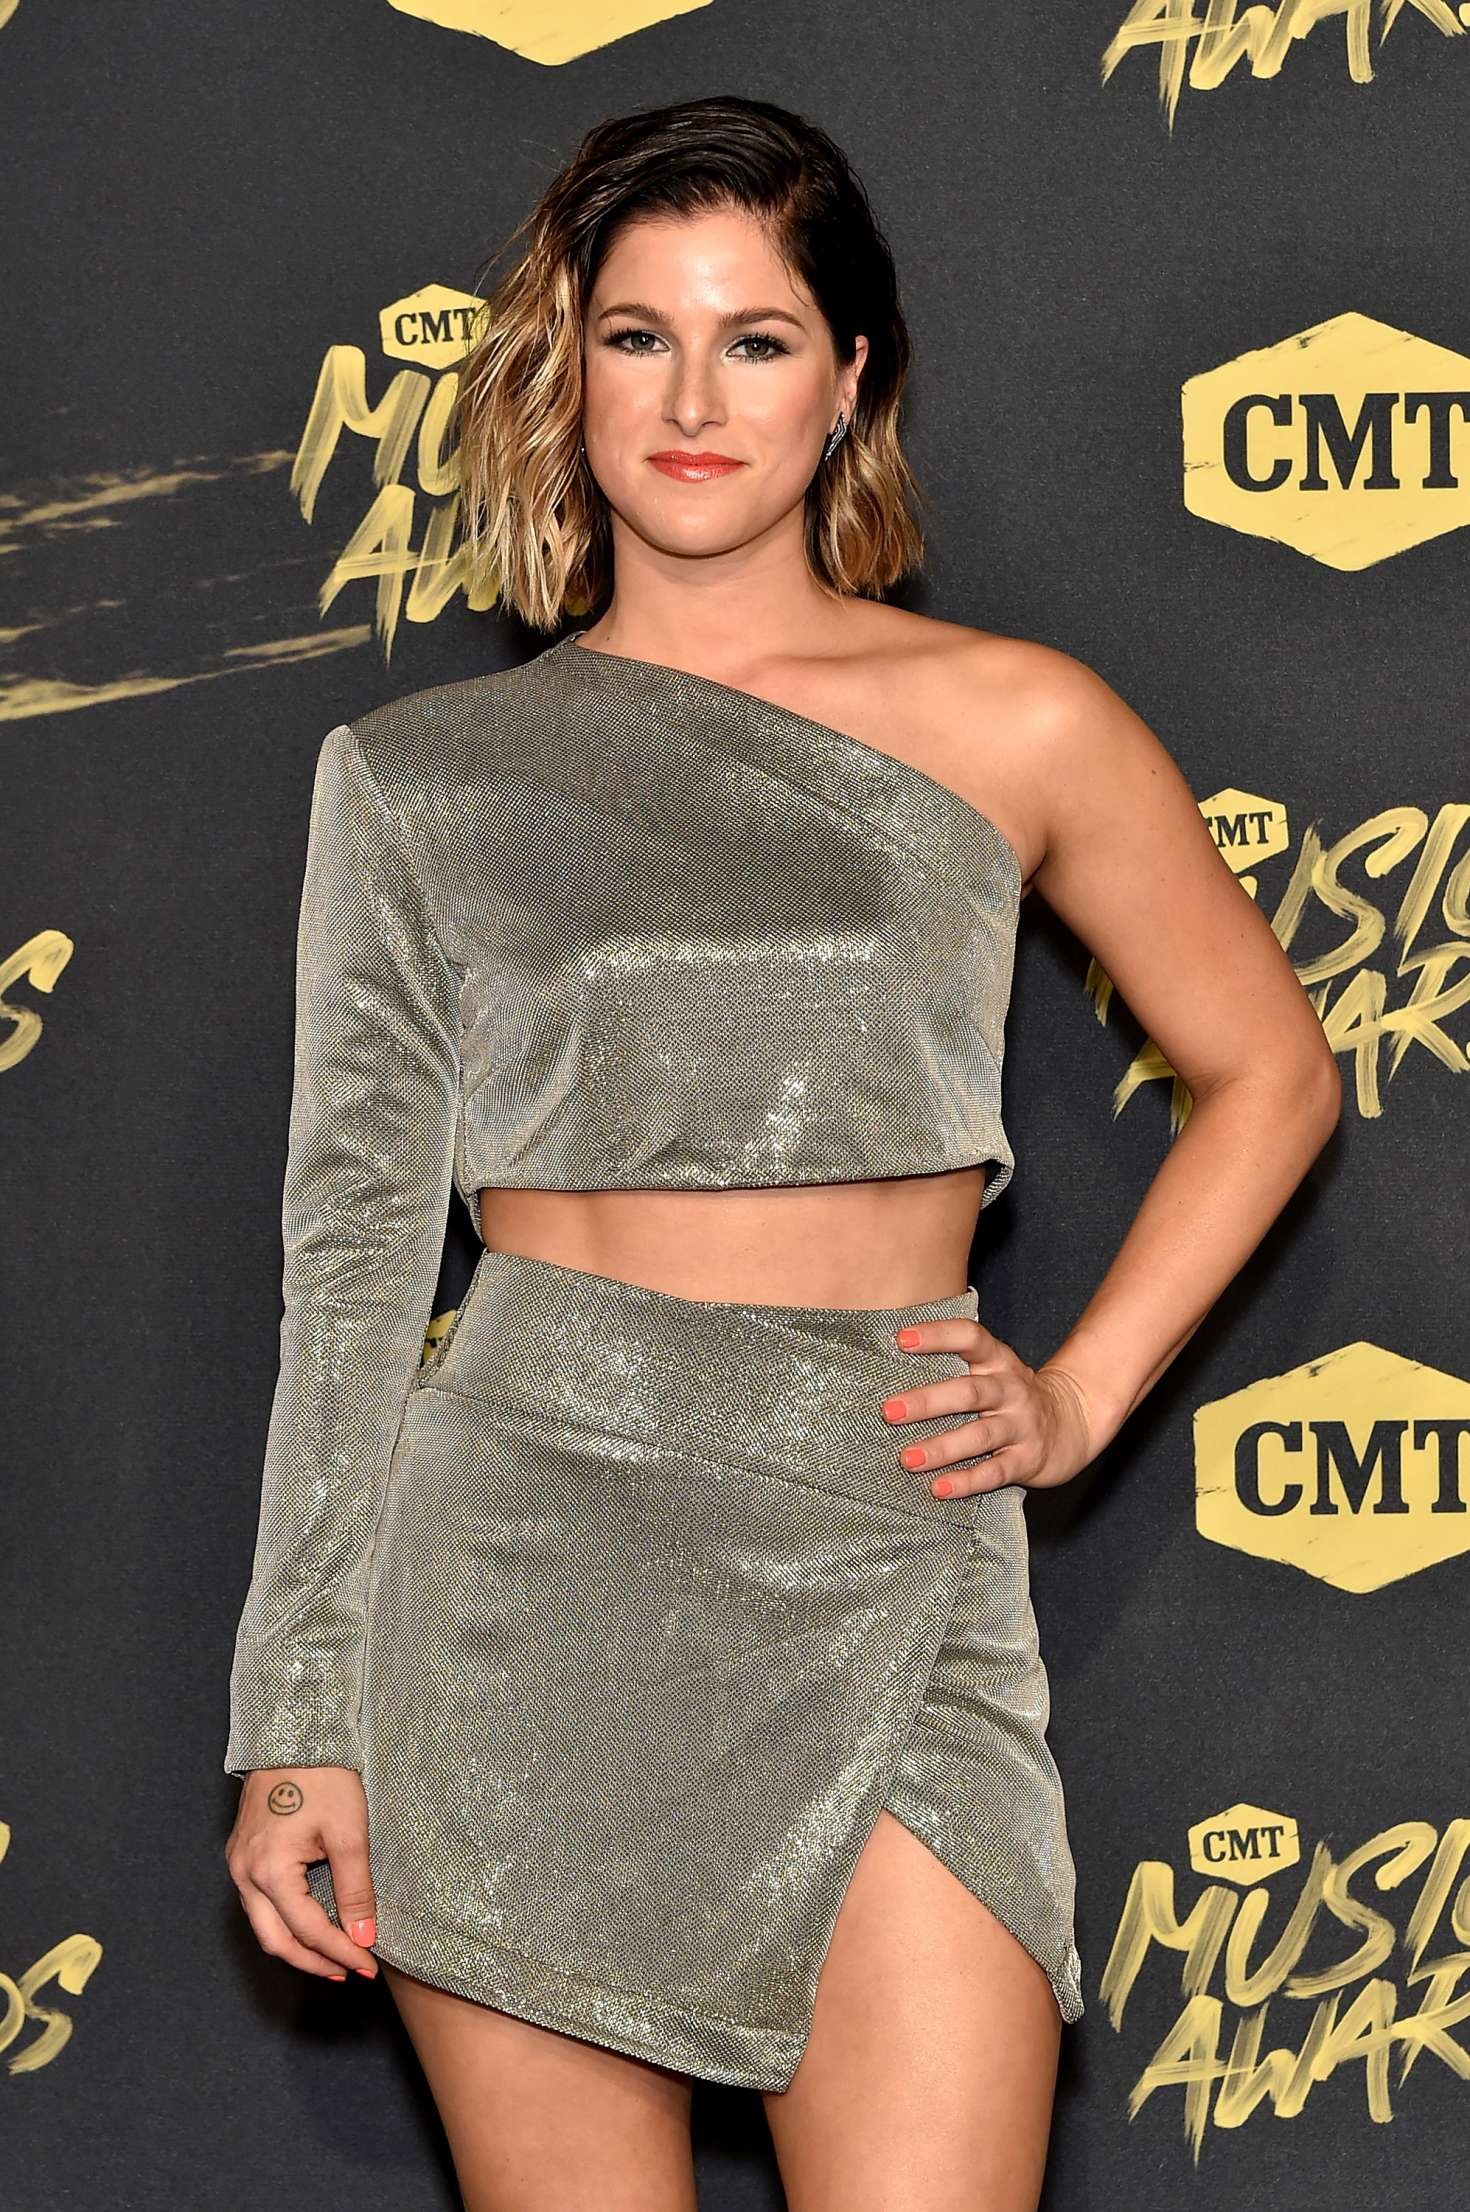 Cassadee Pope 2018 : Cassadee Pope: 2018 CMT Music Awards -04